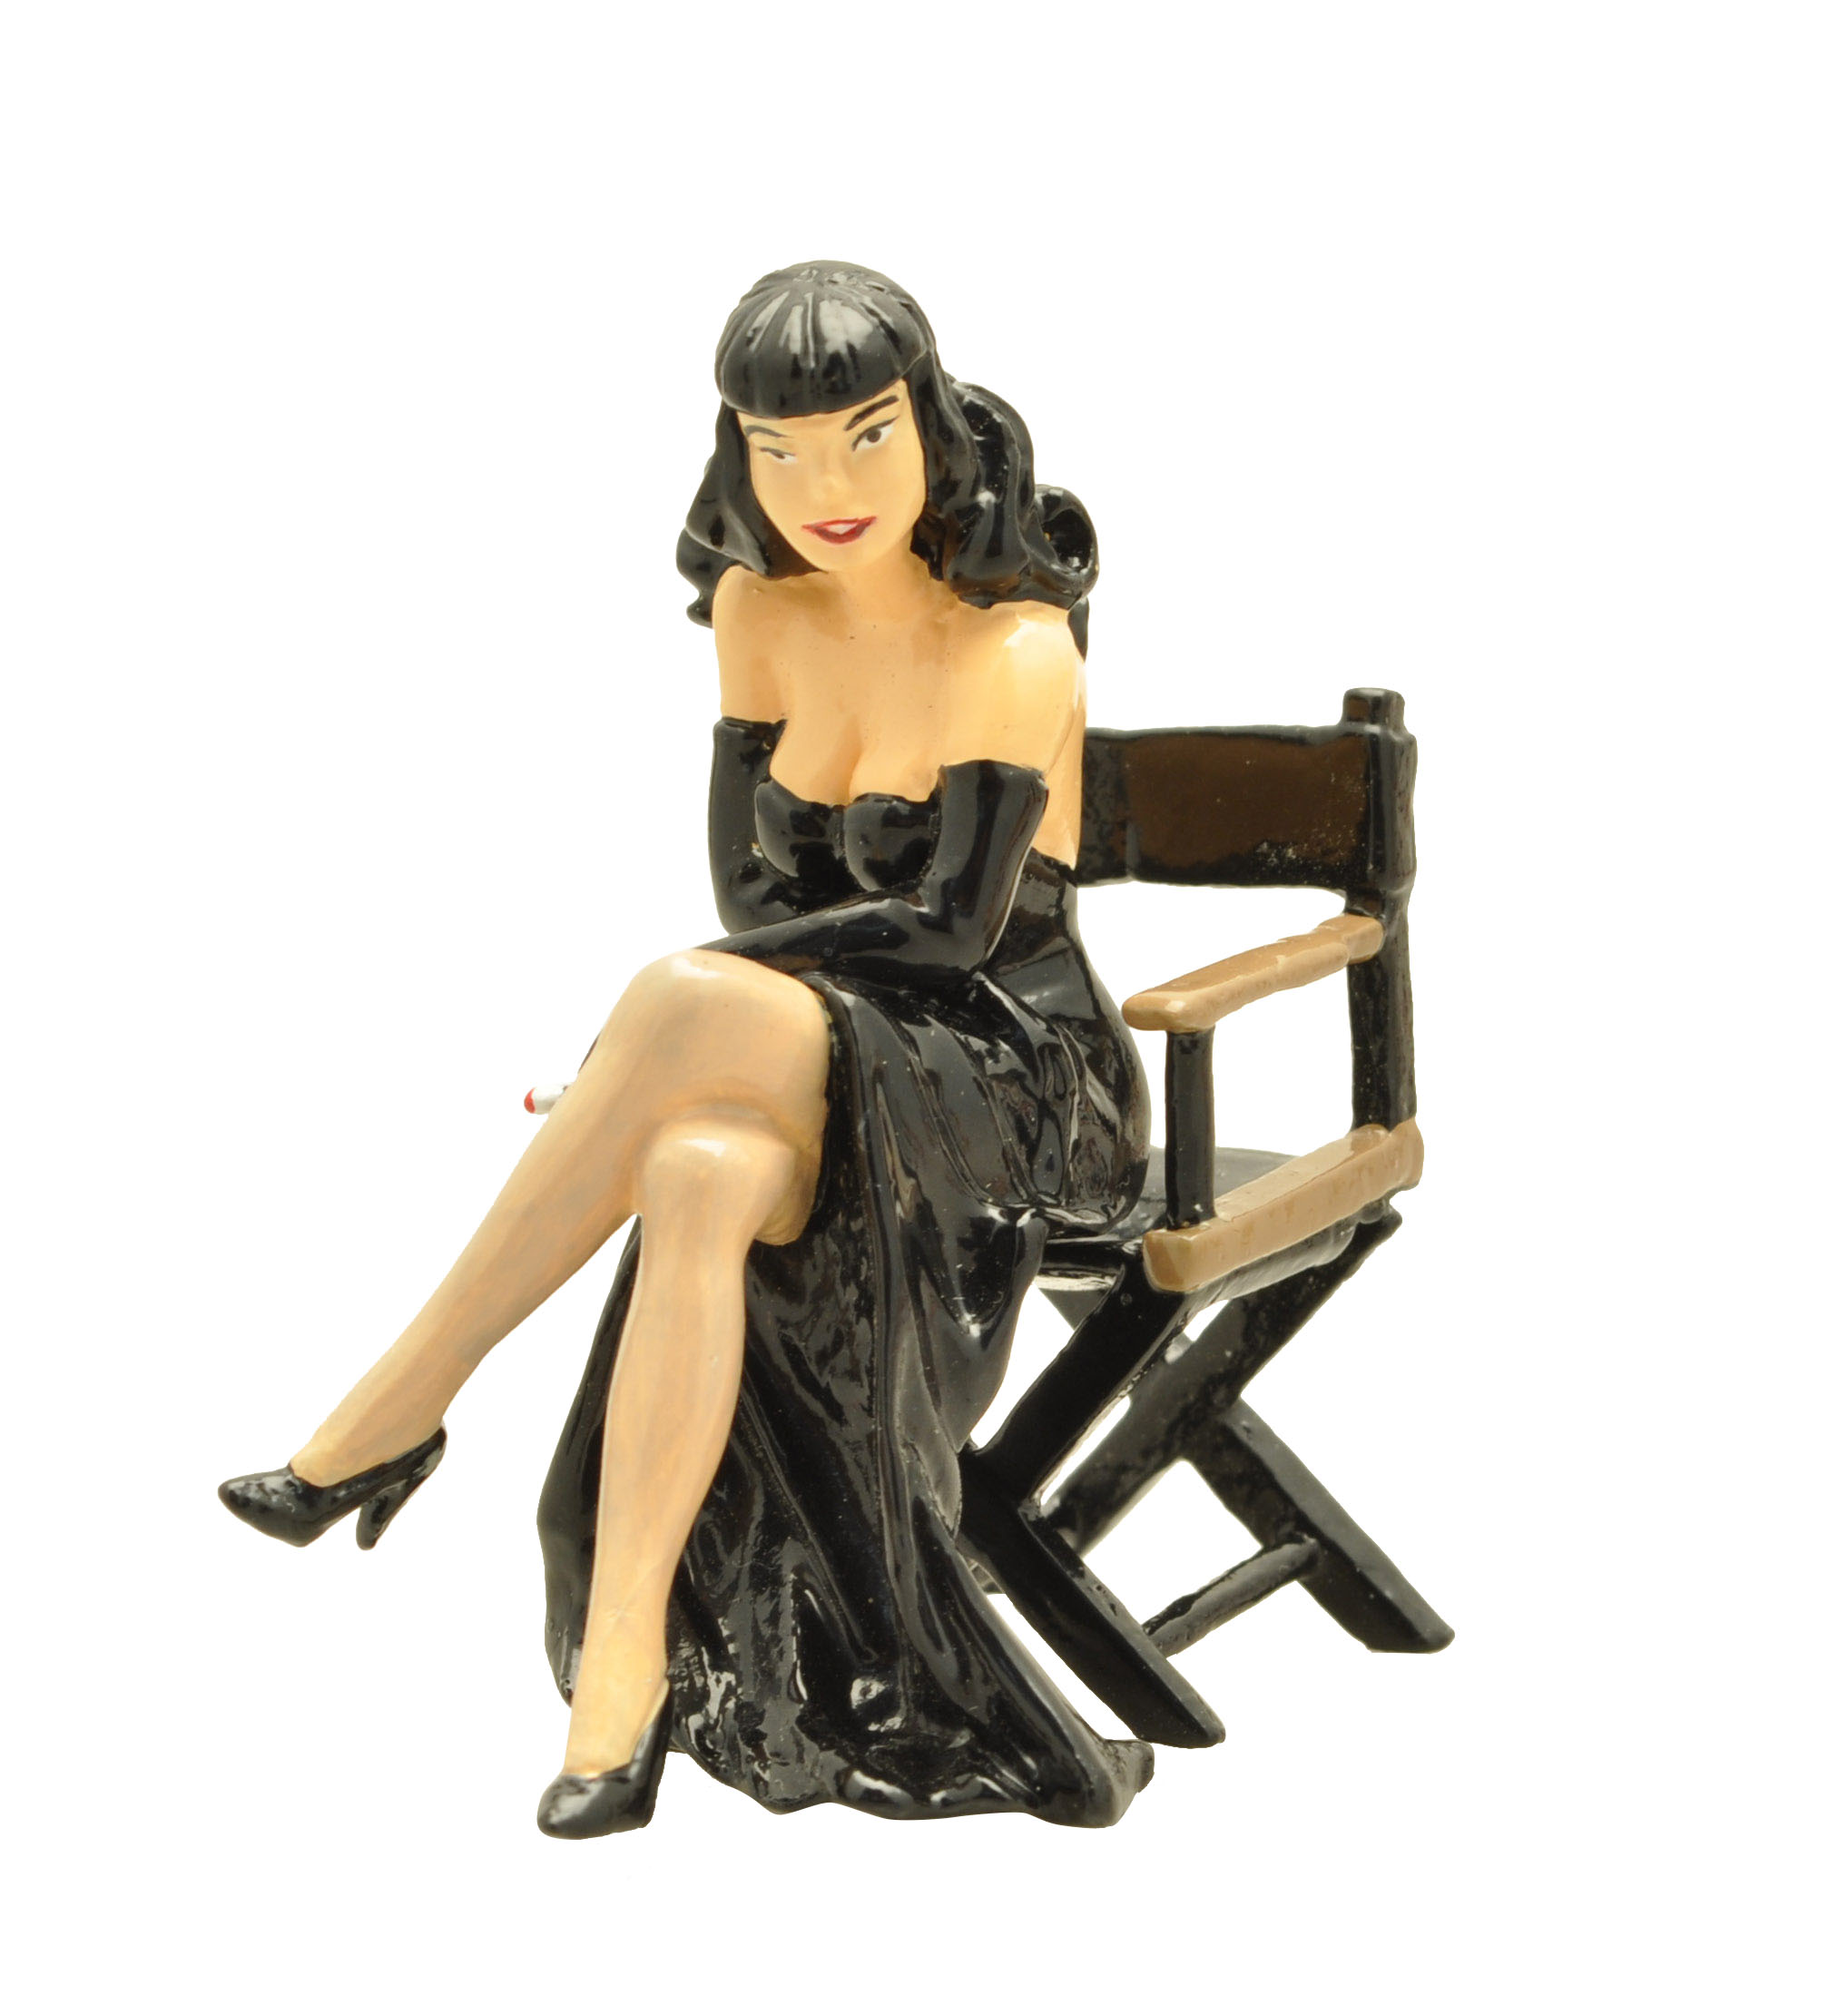 figurine pin up berthet fauteuil metteur en sc ne pixi origine 05332. Black Bedroom Furniture Sets. Home Design Ideas